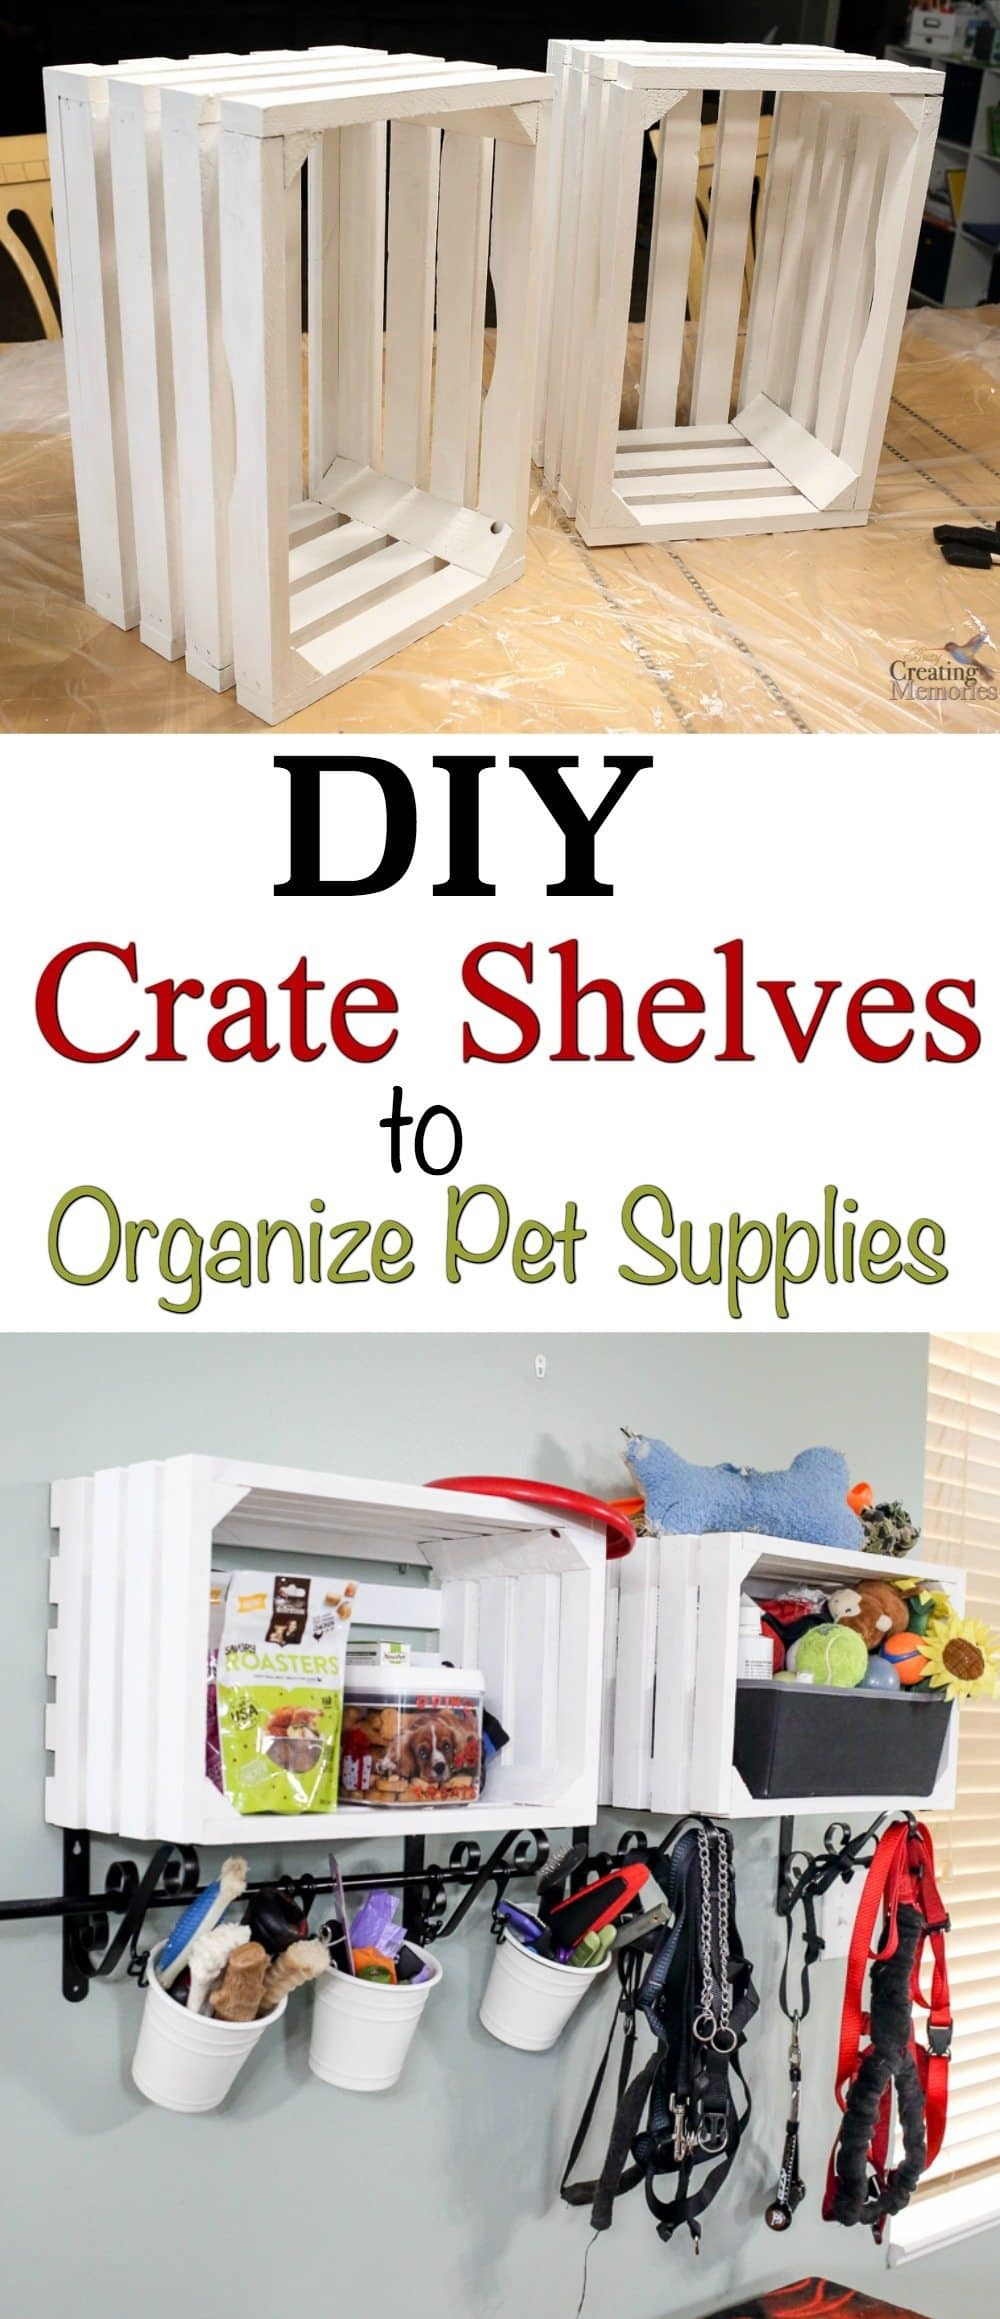 Turn ordinary wooden crates into cool crate shelves for organizing pet supplies or a variety of other house organizing such as toys, books, dishes, or linen